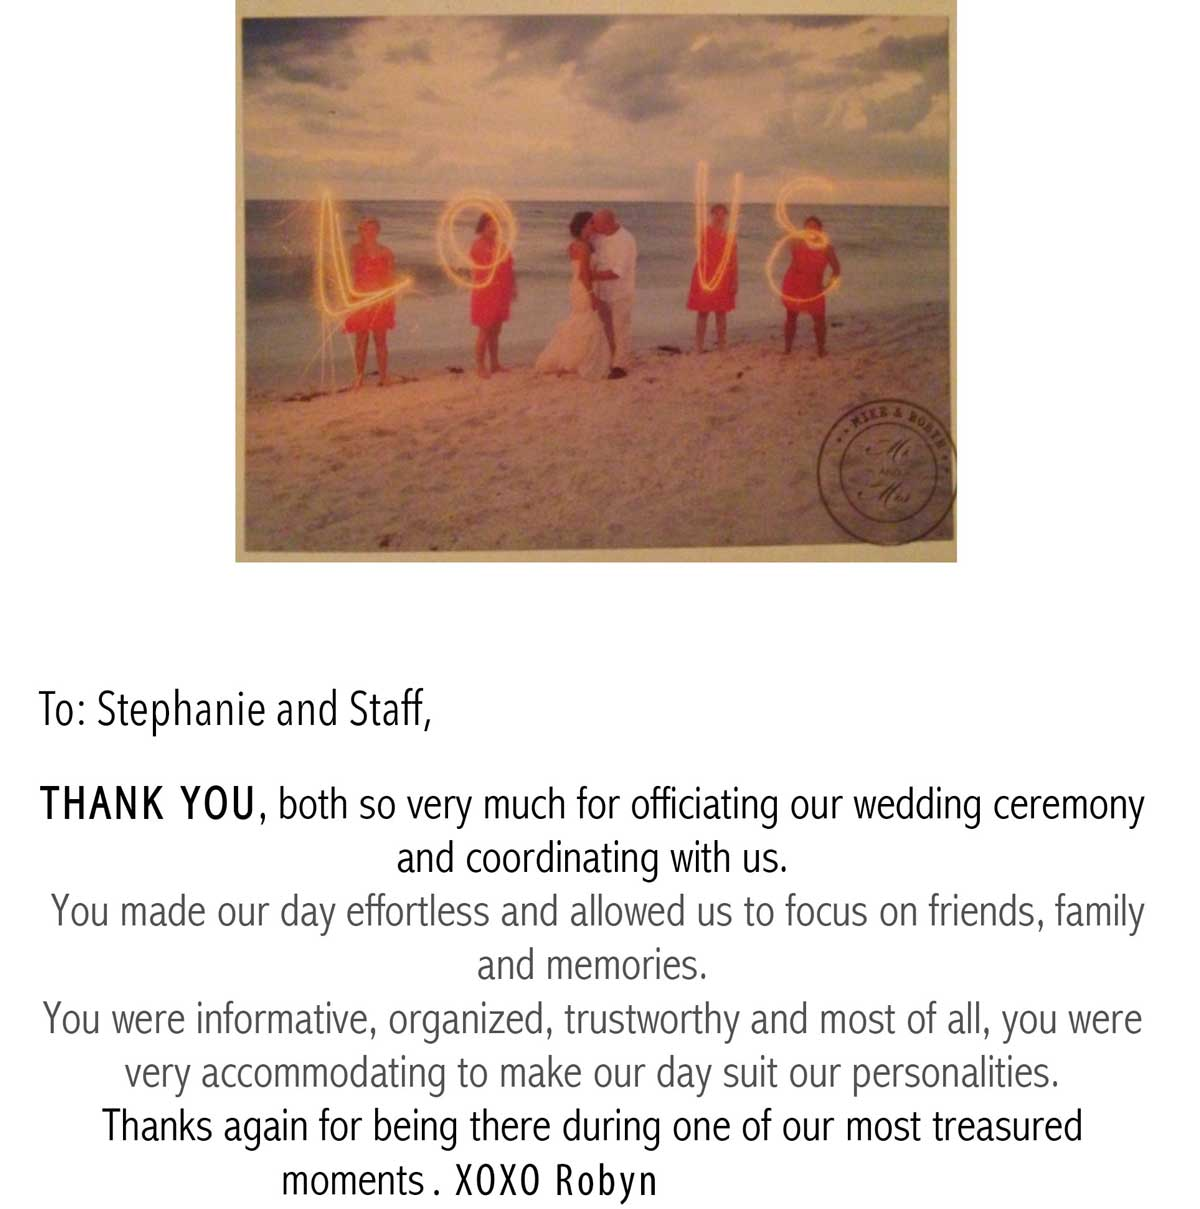 Thank you note from Robyn a past client of Weddings Made Simple | DISC Temperament Assessment, Pre and Post Marriage Coaching, Wedding Officiants and Wedding Ministers Naples Florida